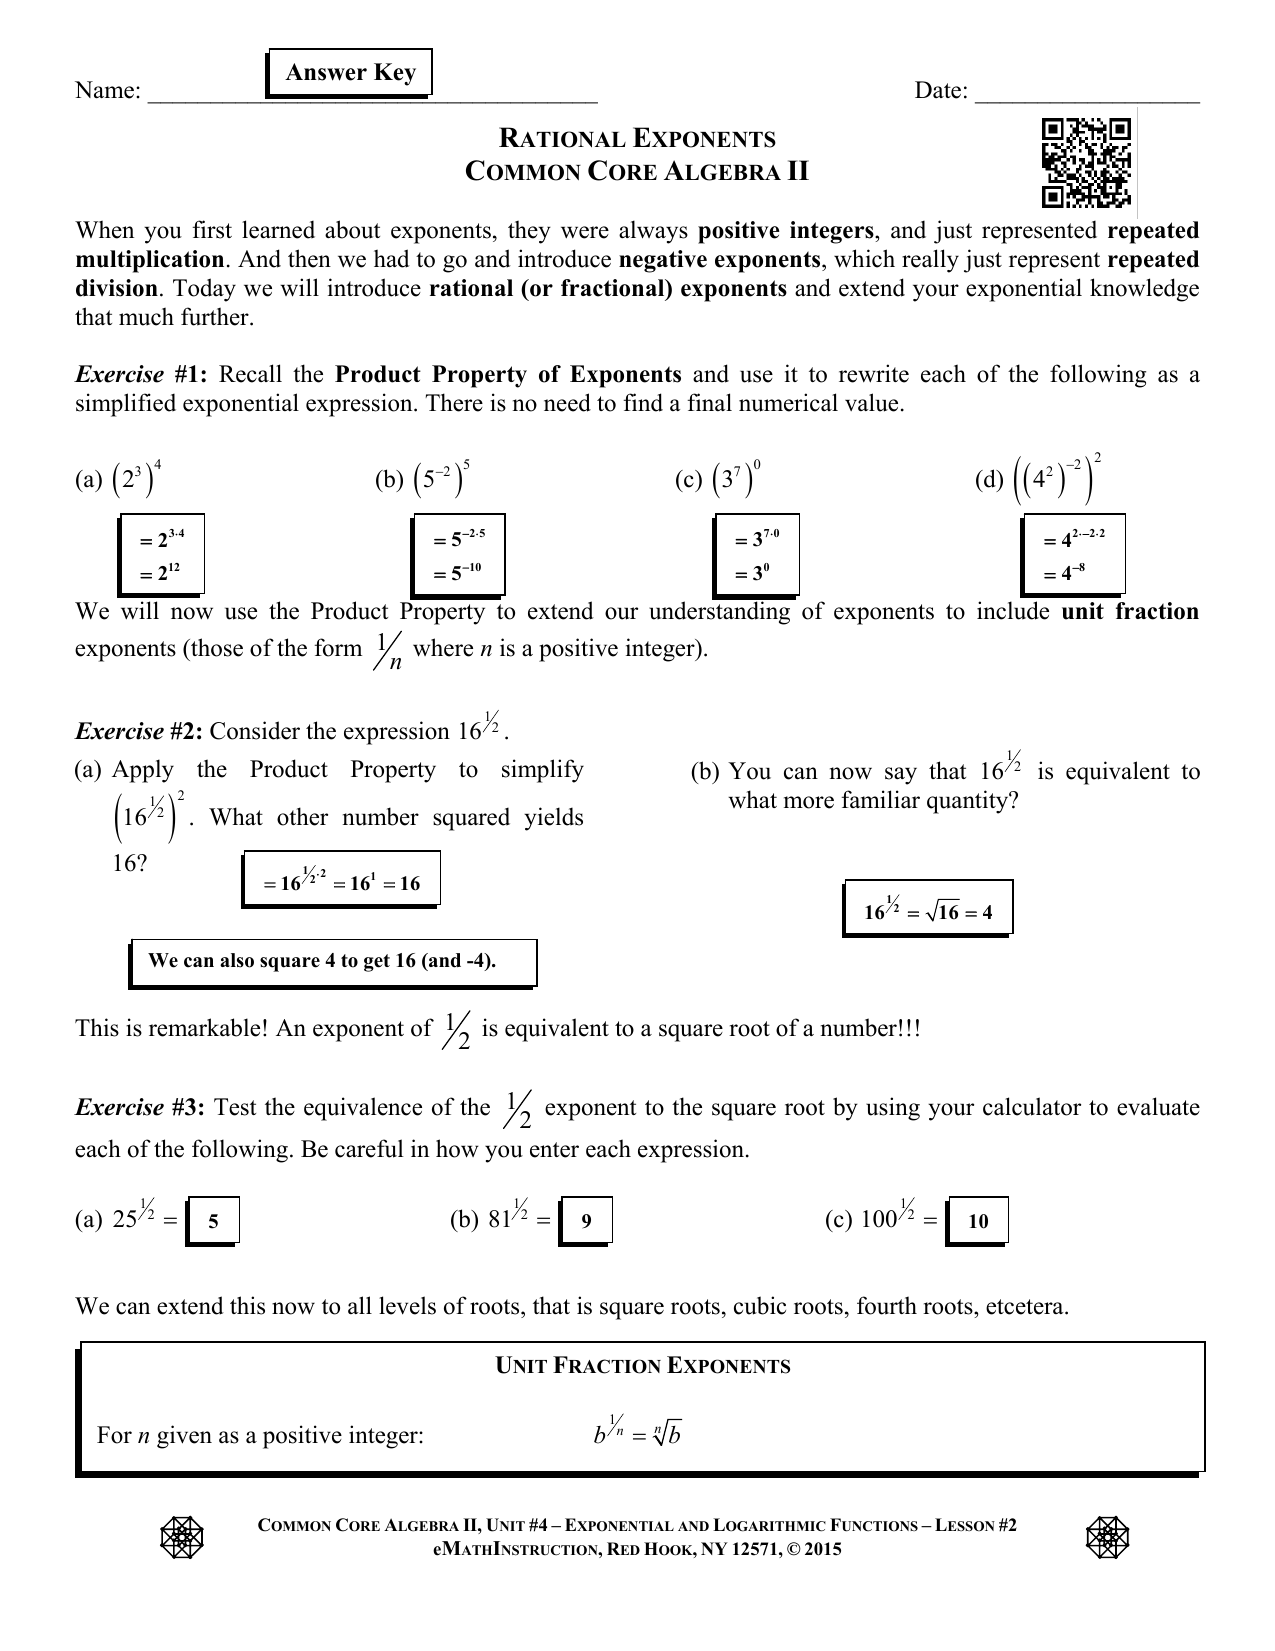 Rational Exponents Algebra 2 Worksheet